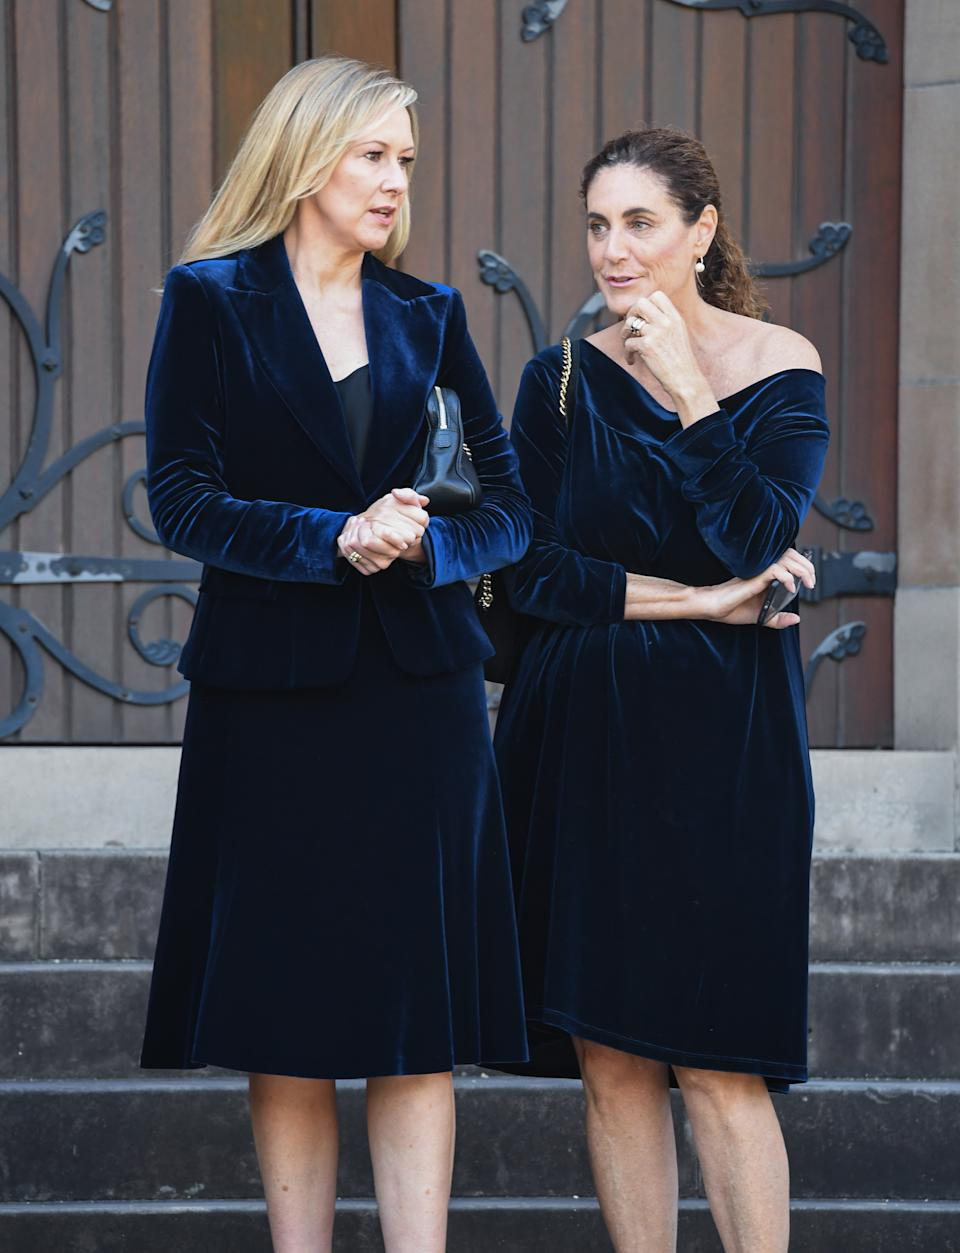 Melissa Doyle talks to Jackie Franks as they attend the State Funeral for Carla Zampatti at St Mary's Cathedral on April 15, 2021 in Sydney, Australia.